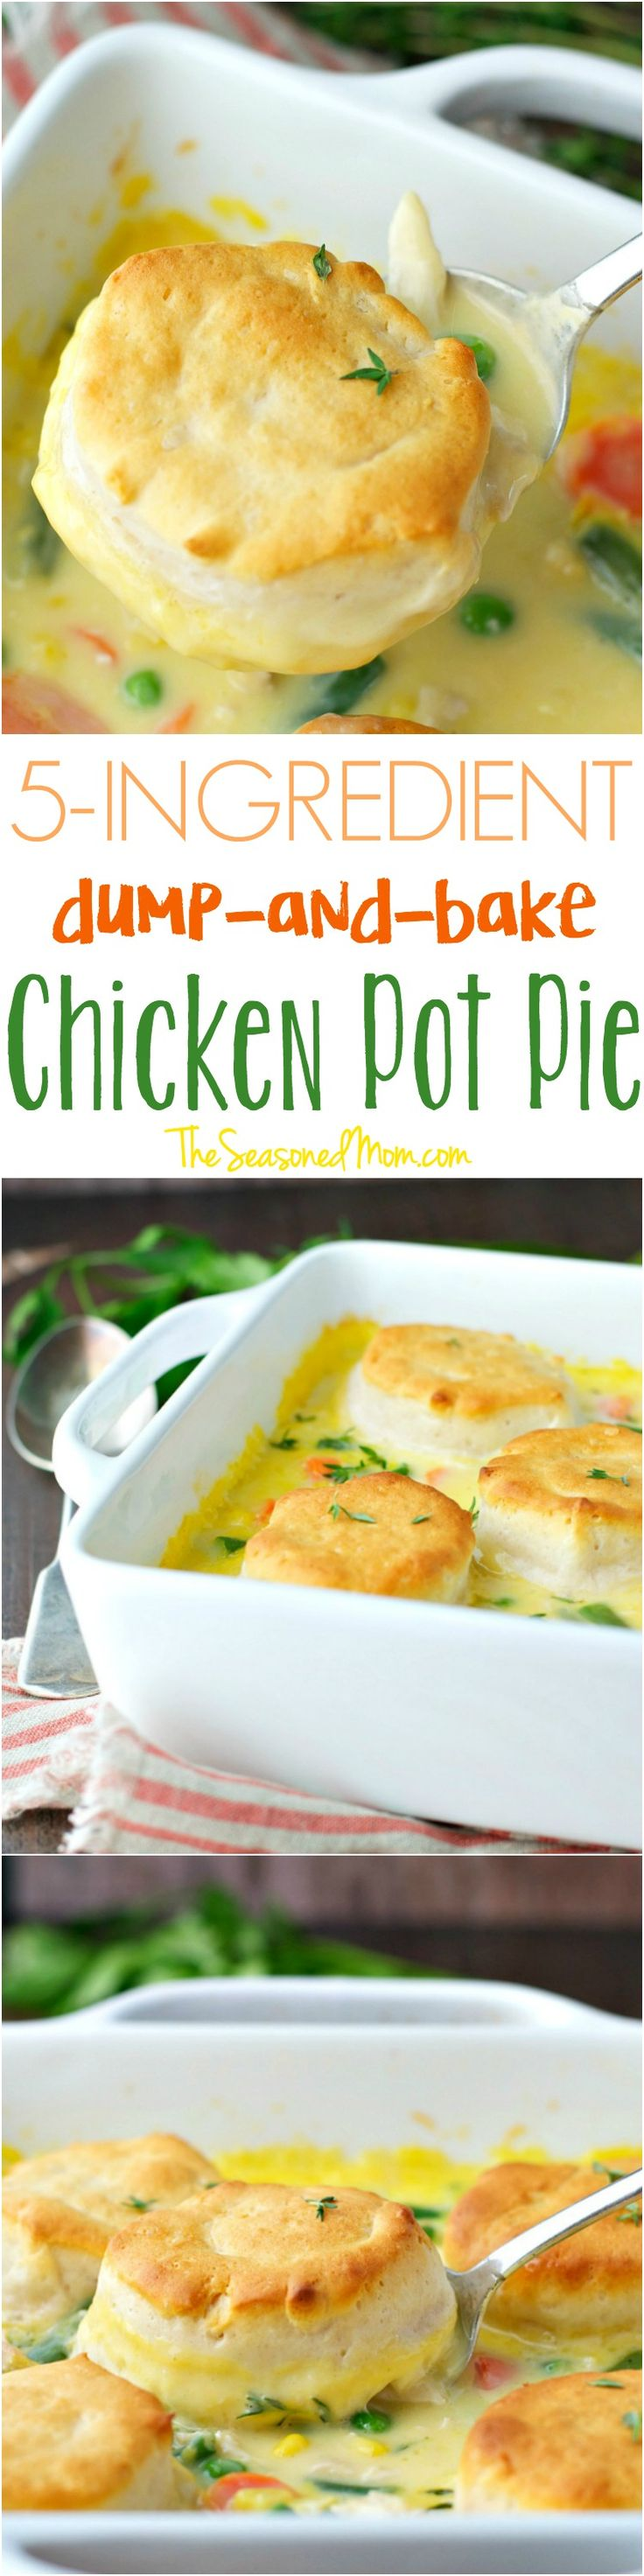 You only need 5 ingredients and 5 minutes to make this Dump-and-Bake Chicken Pot Pie Recipe! It's an easy, family-friendly dinner that's perfect for busy weeknights!